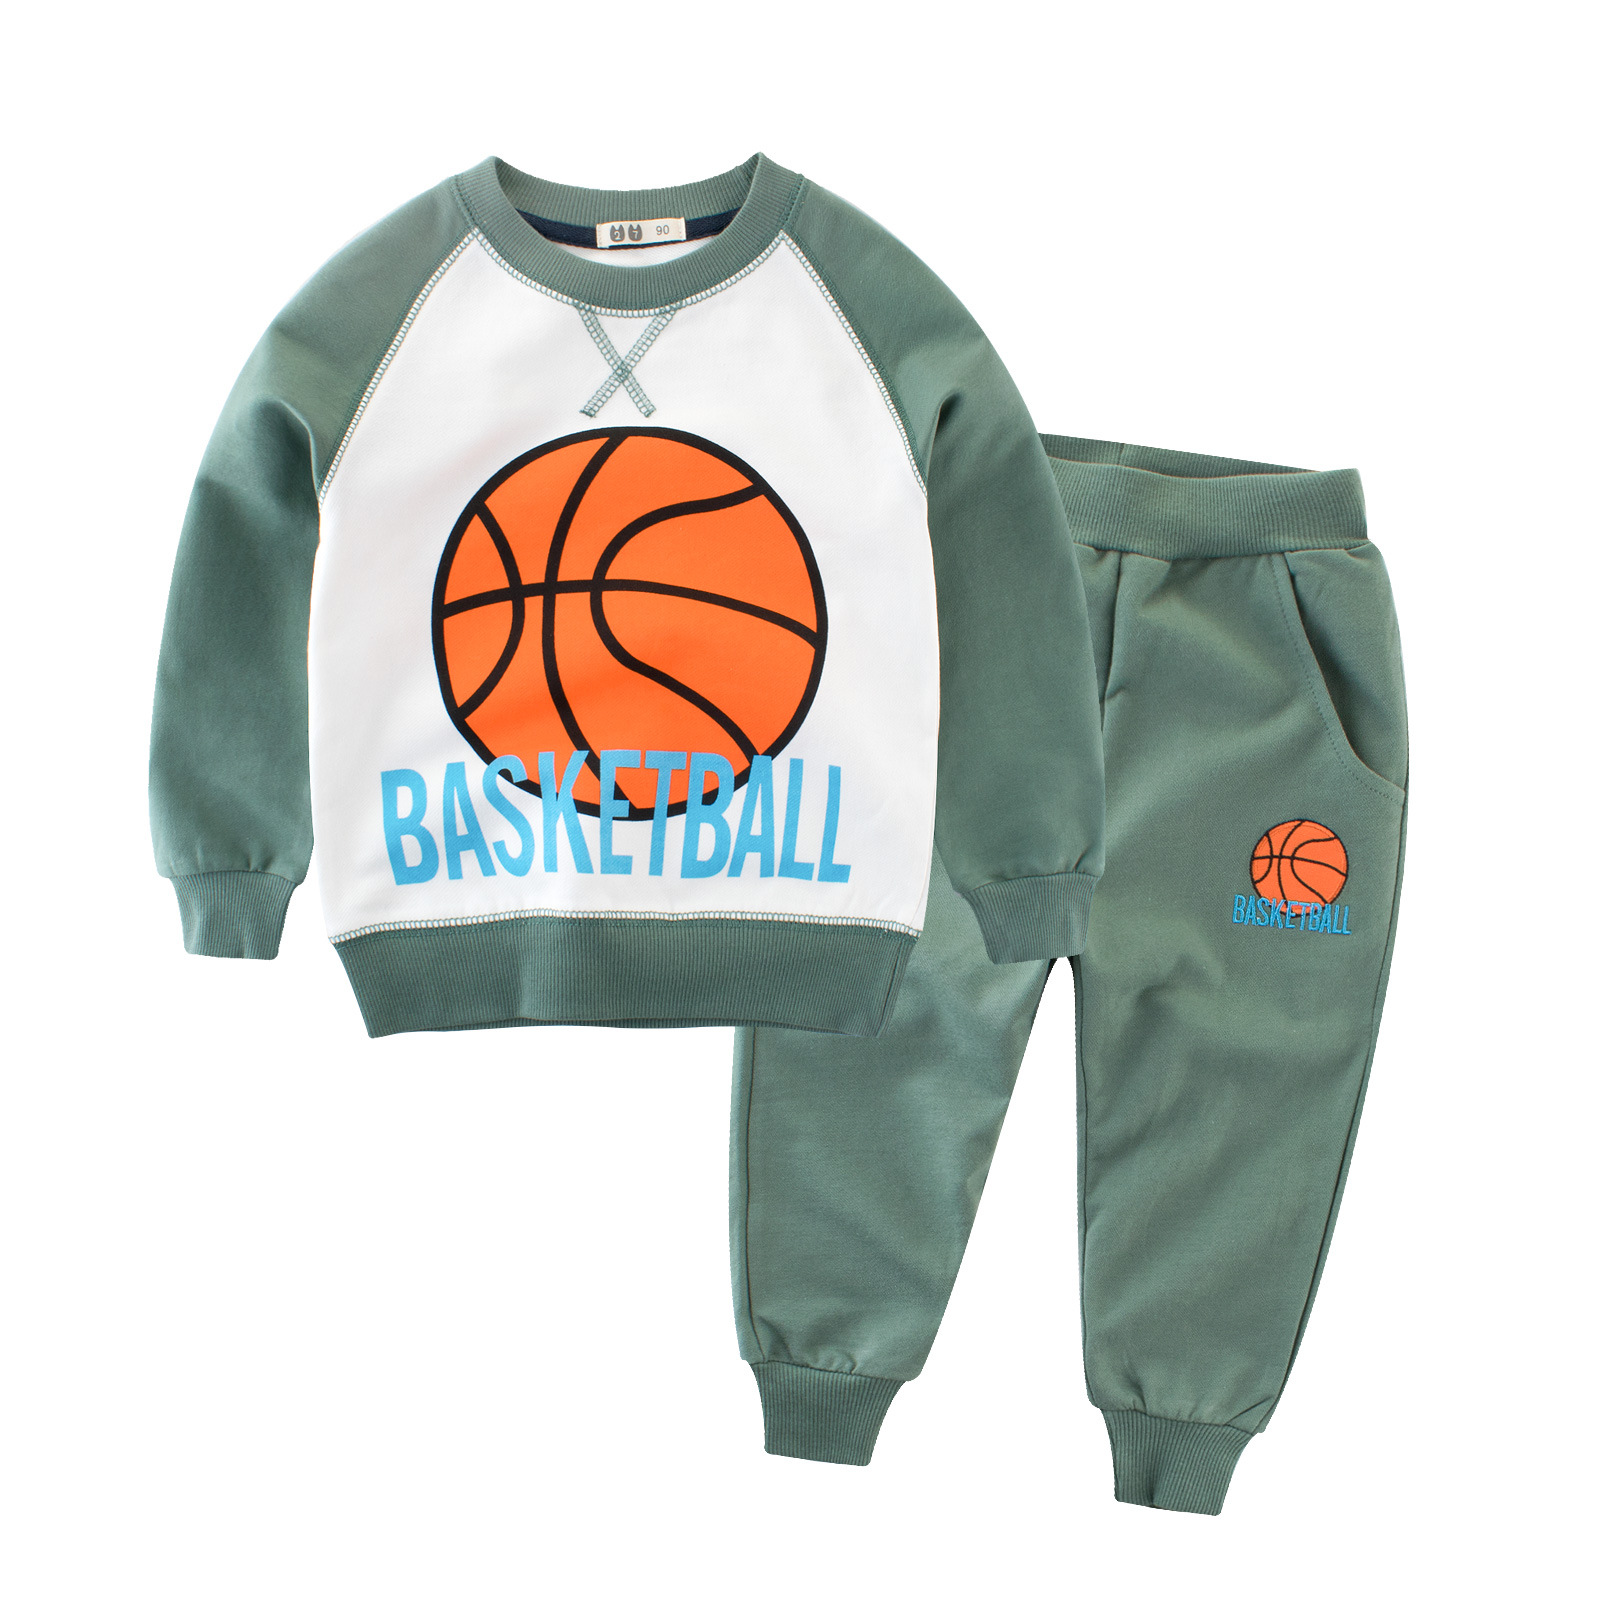 Kids clothes football printed baby boy clothes sports children